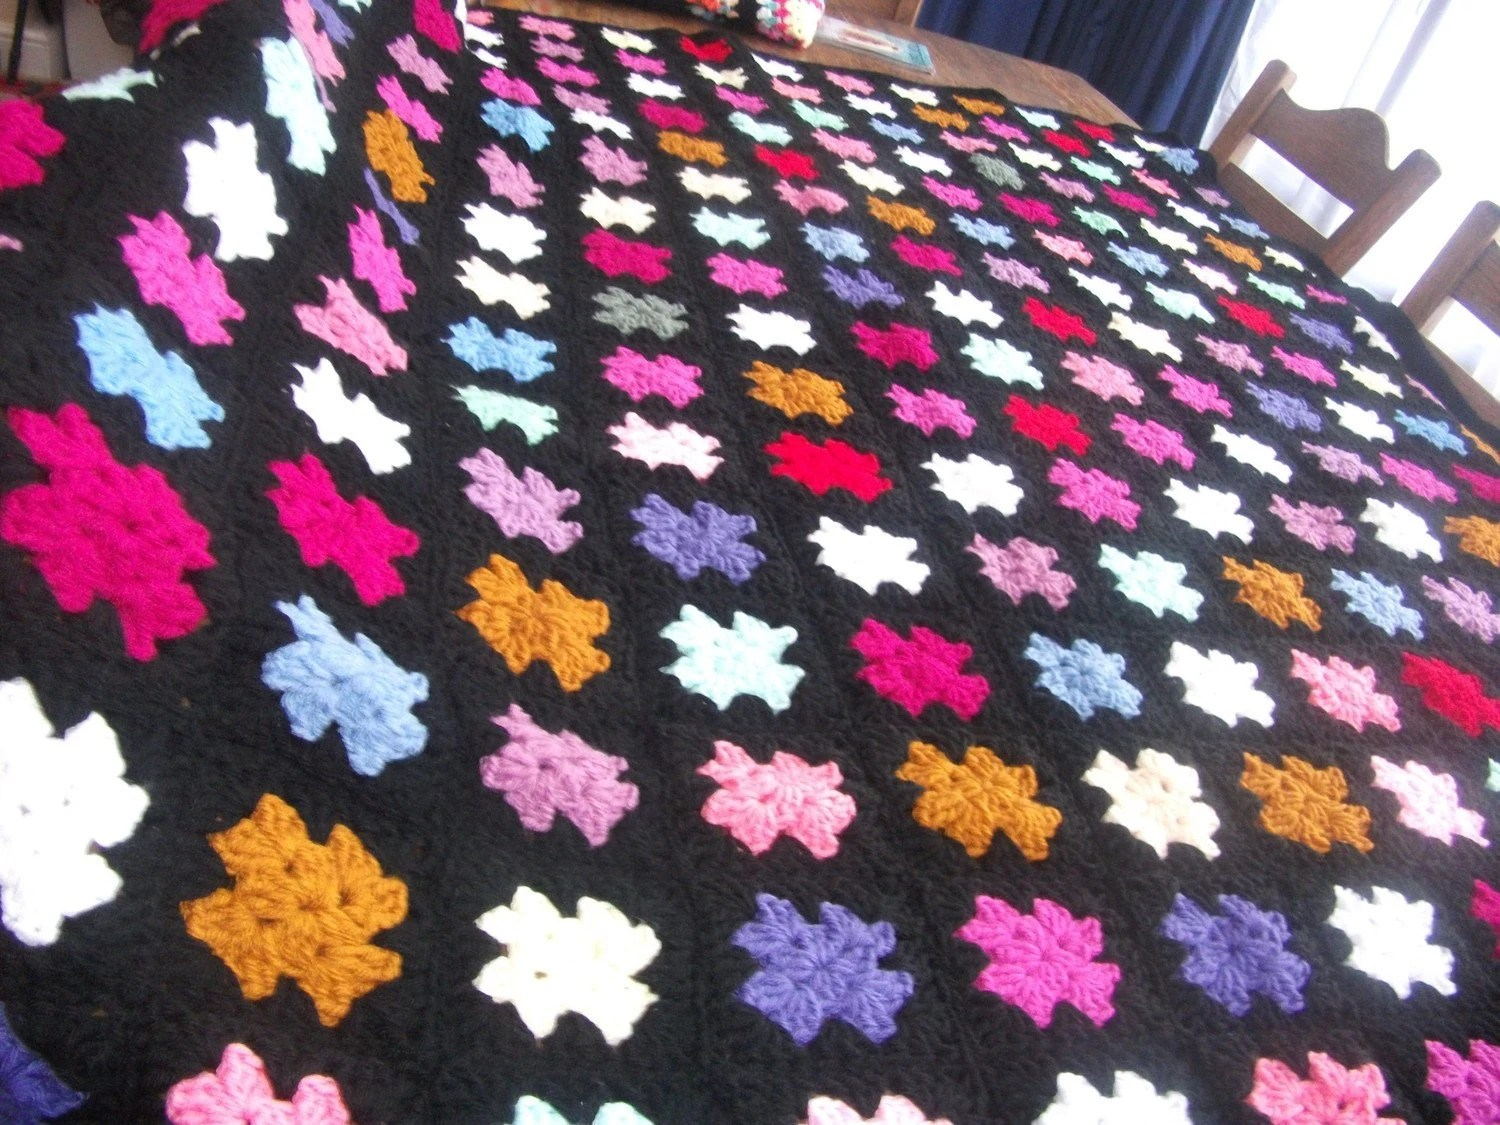 Handmade chunky crochet blanket -  Made in tradition granny type multi colour style with black border   2